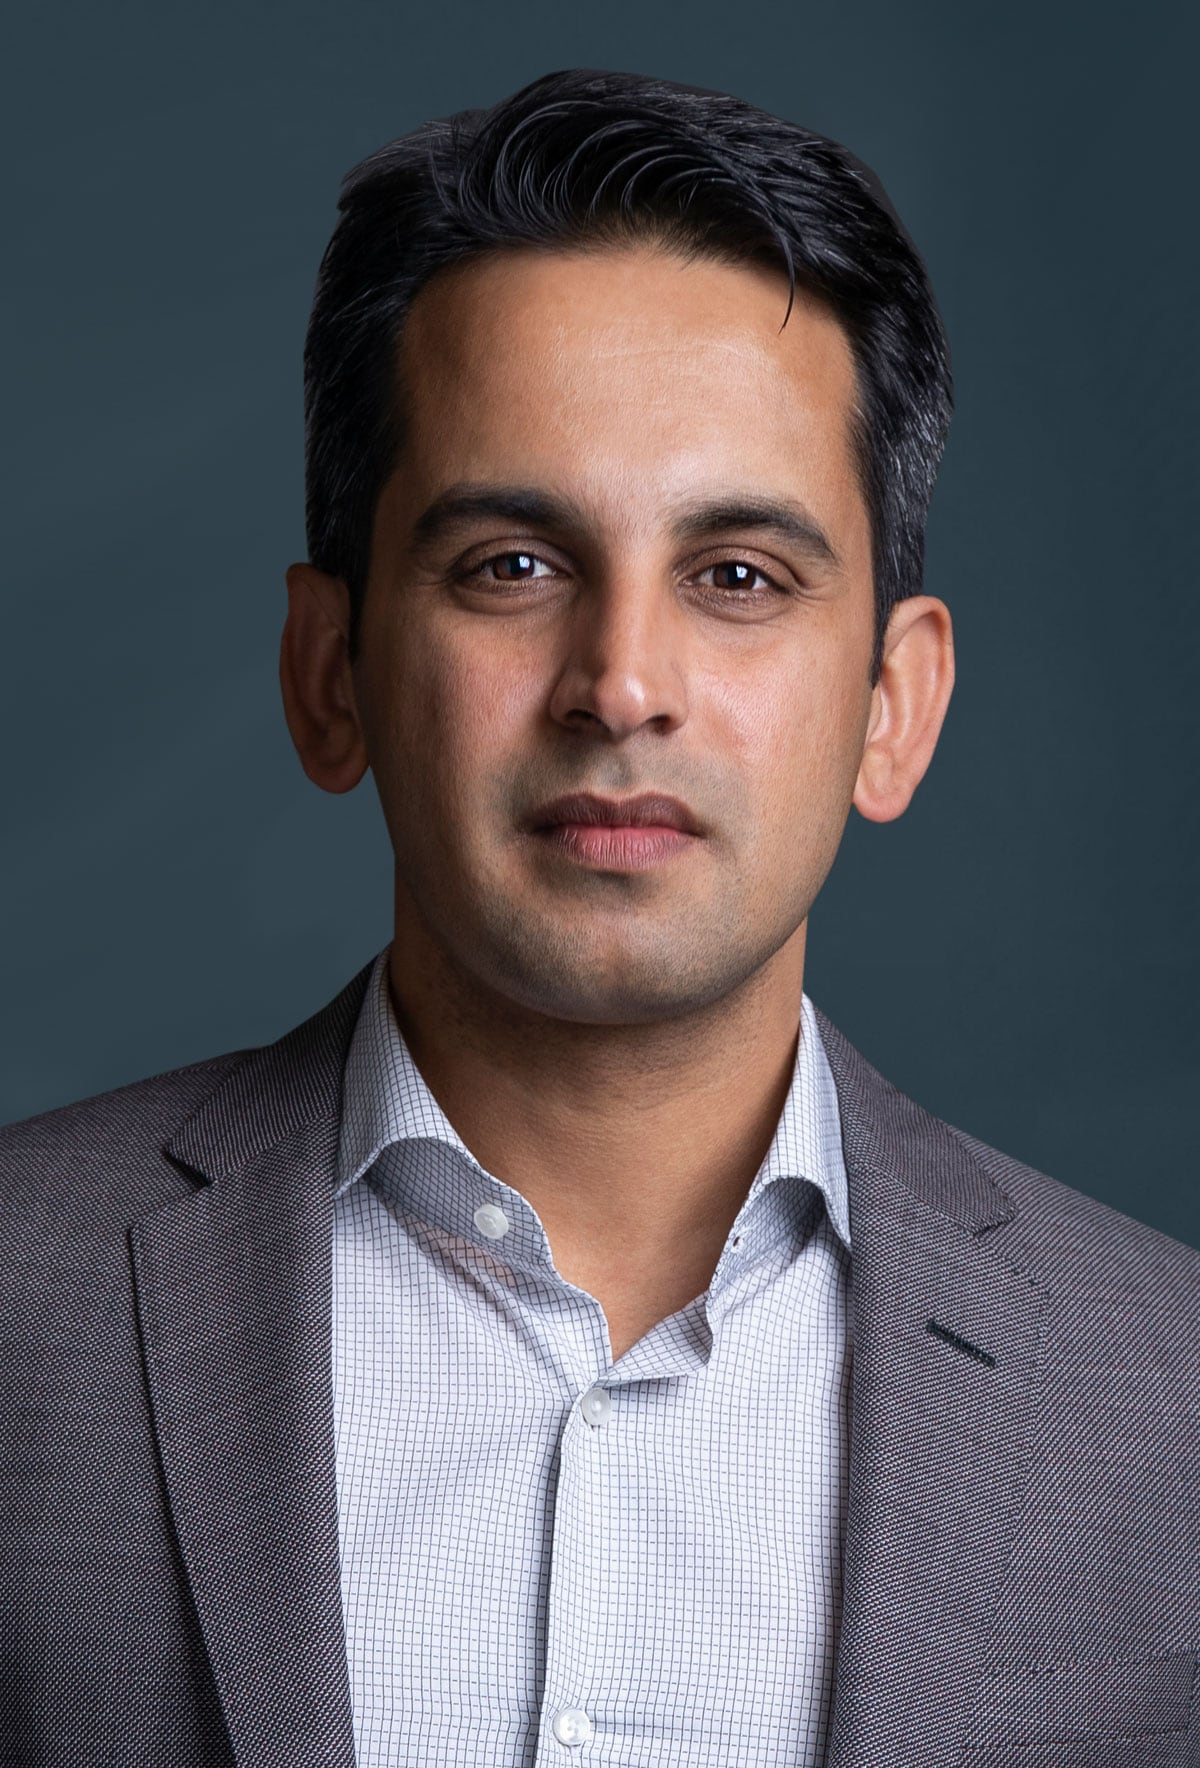 Arun C. Murthy, Chief Product Officer